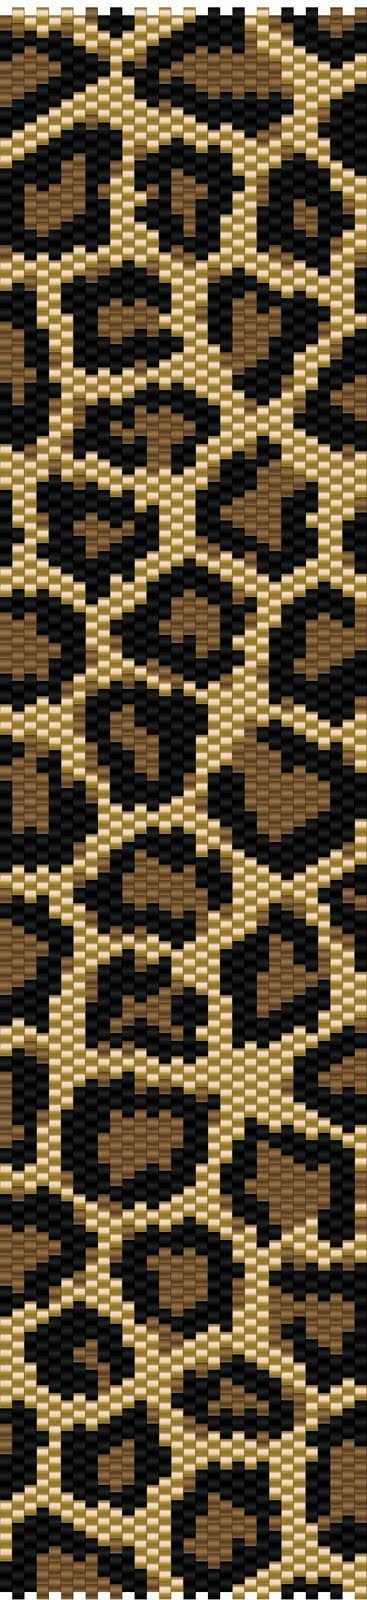 Leopard Peyote Stitch Pattern